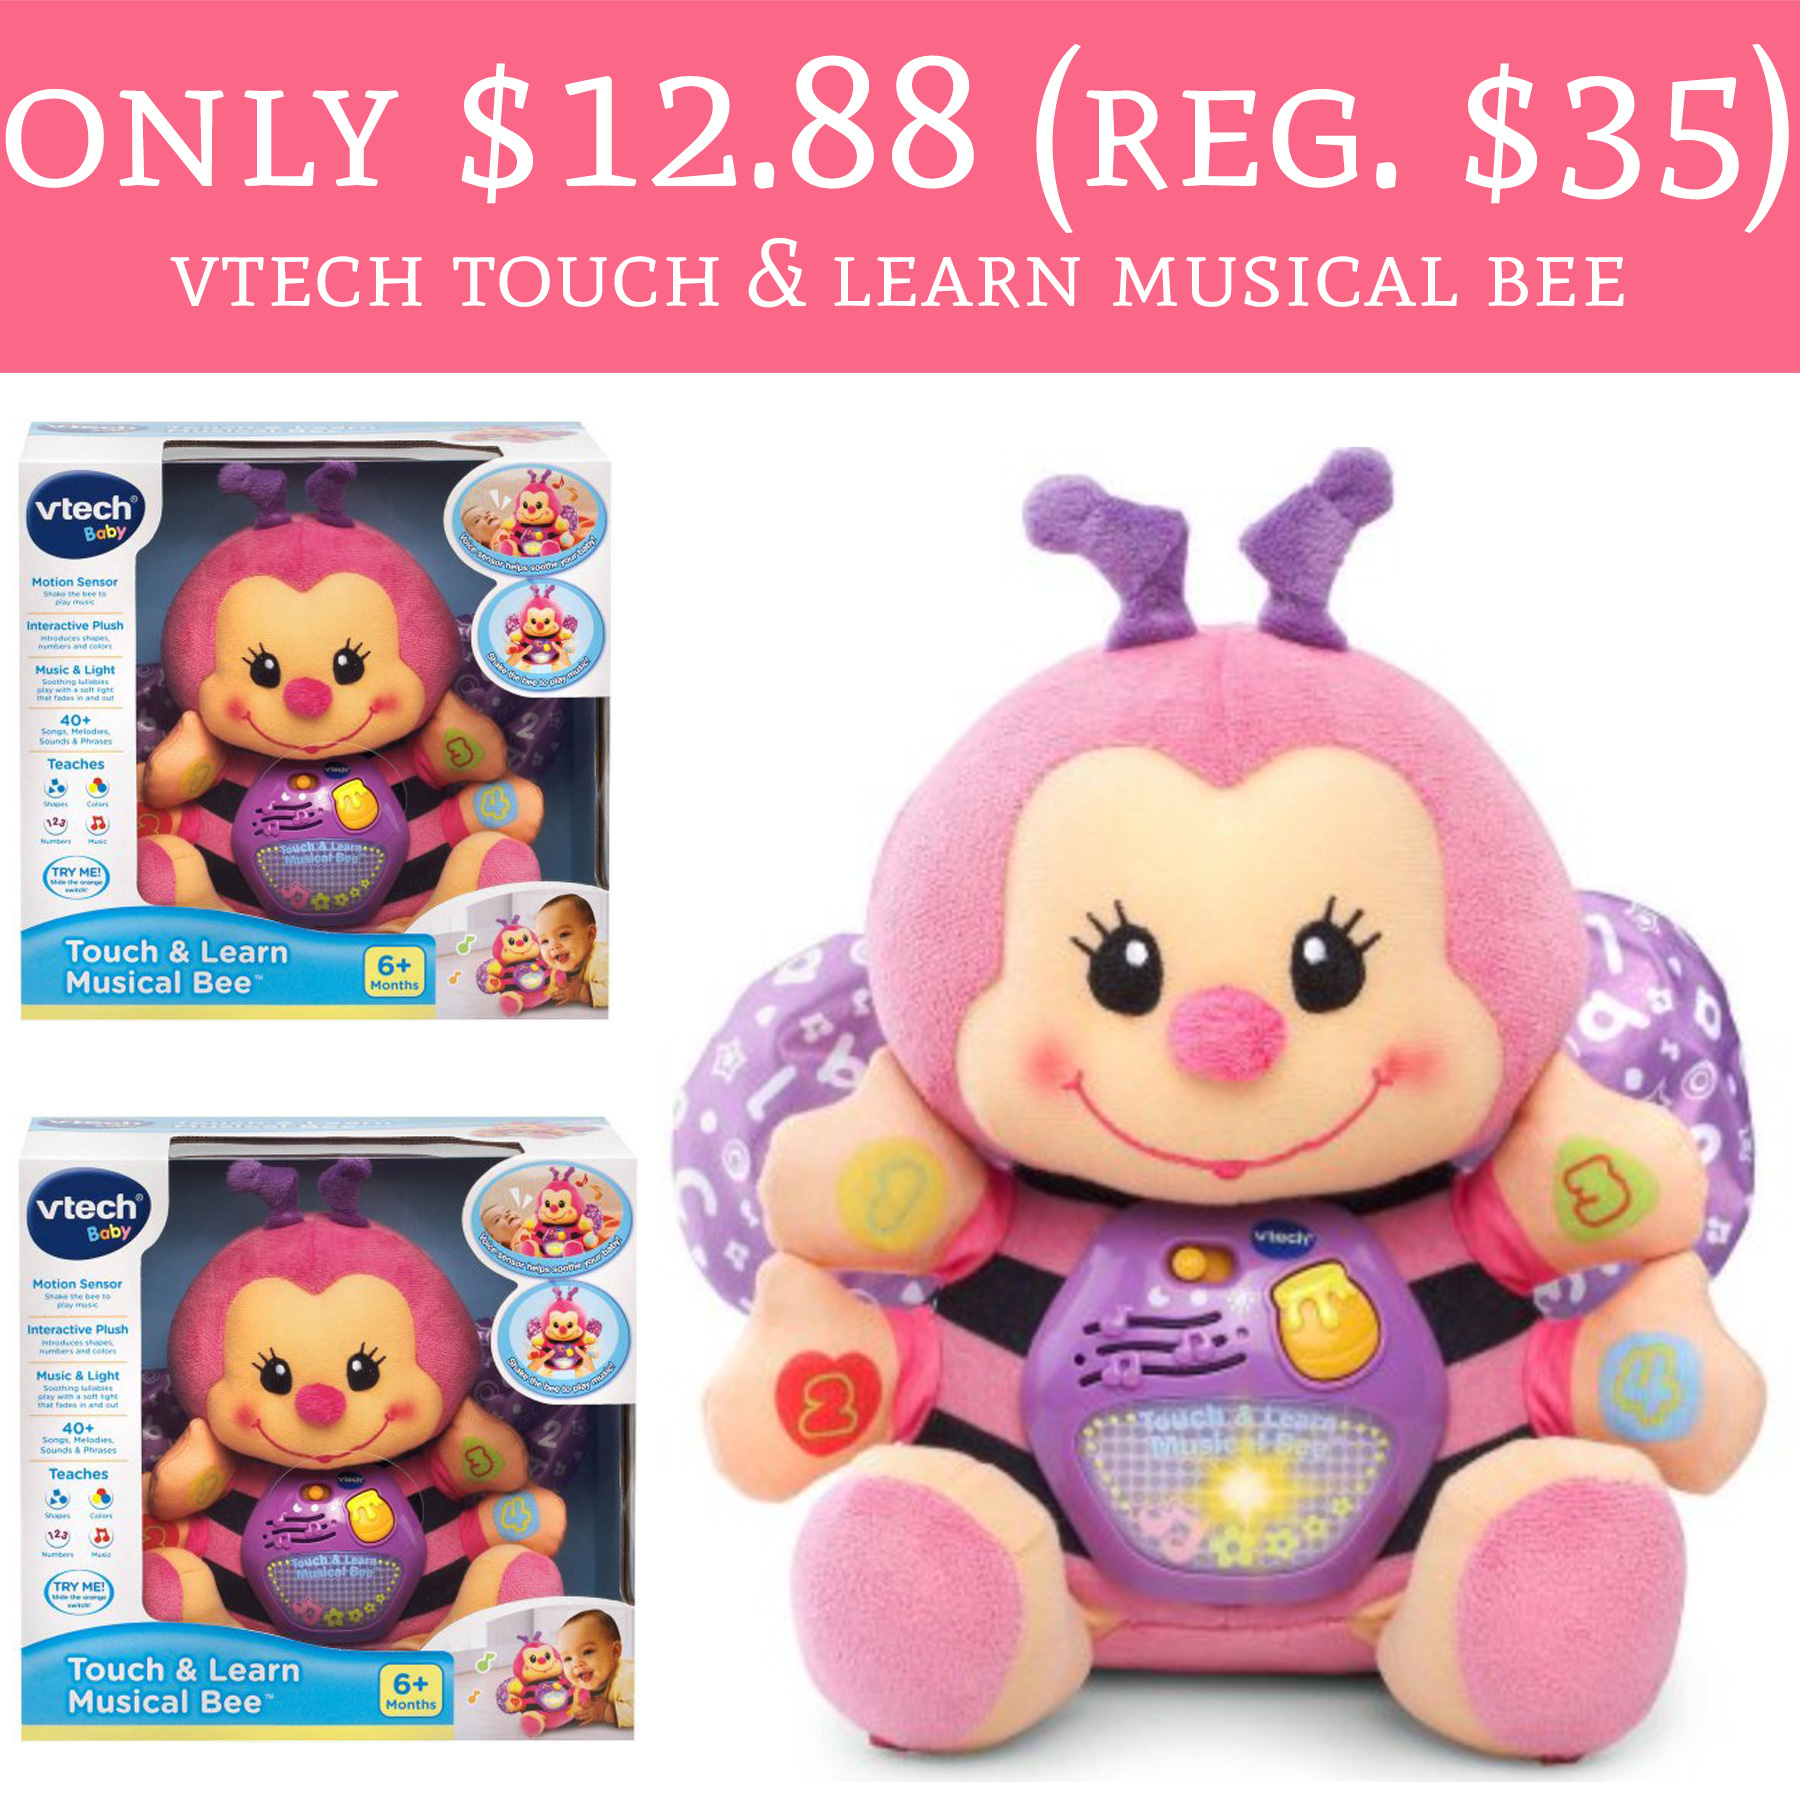 Vtech touch and learn music bee - Review Stream